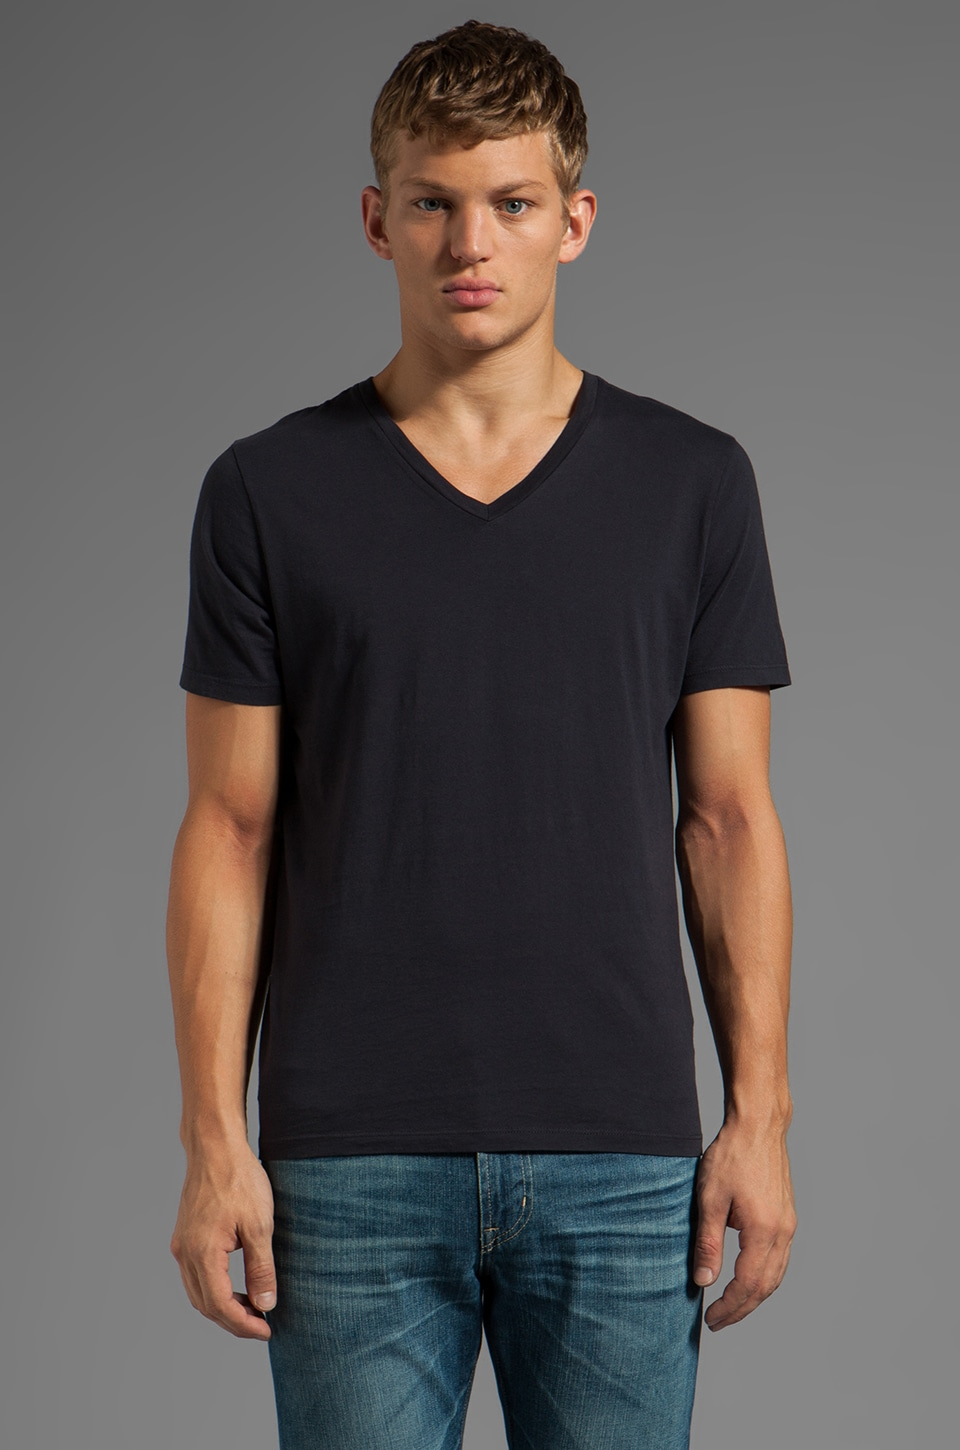 AG Adriano Goldschmied Standard V Neck in Dark Navy